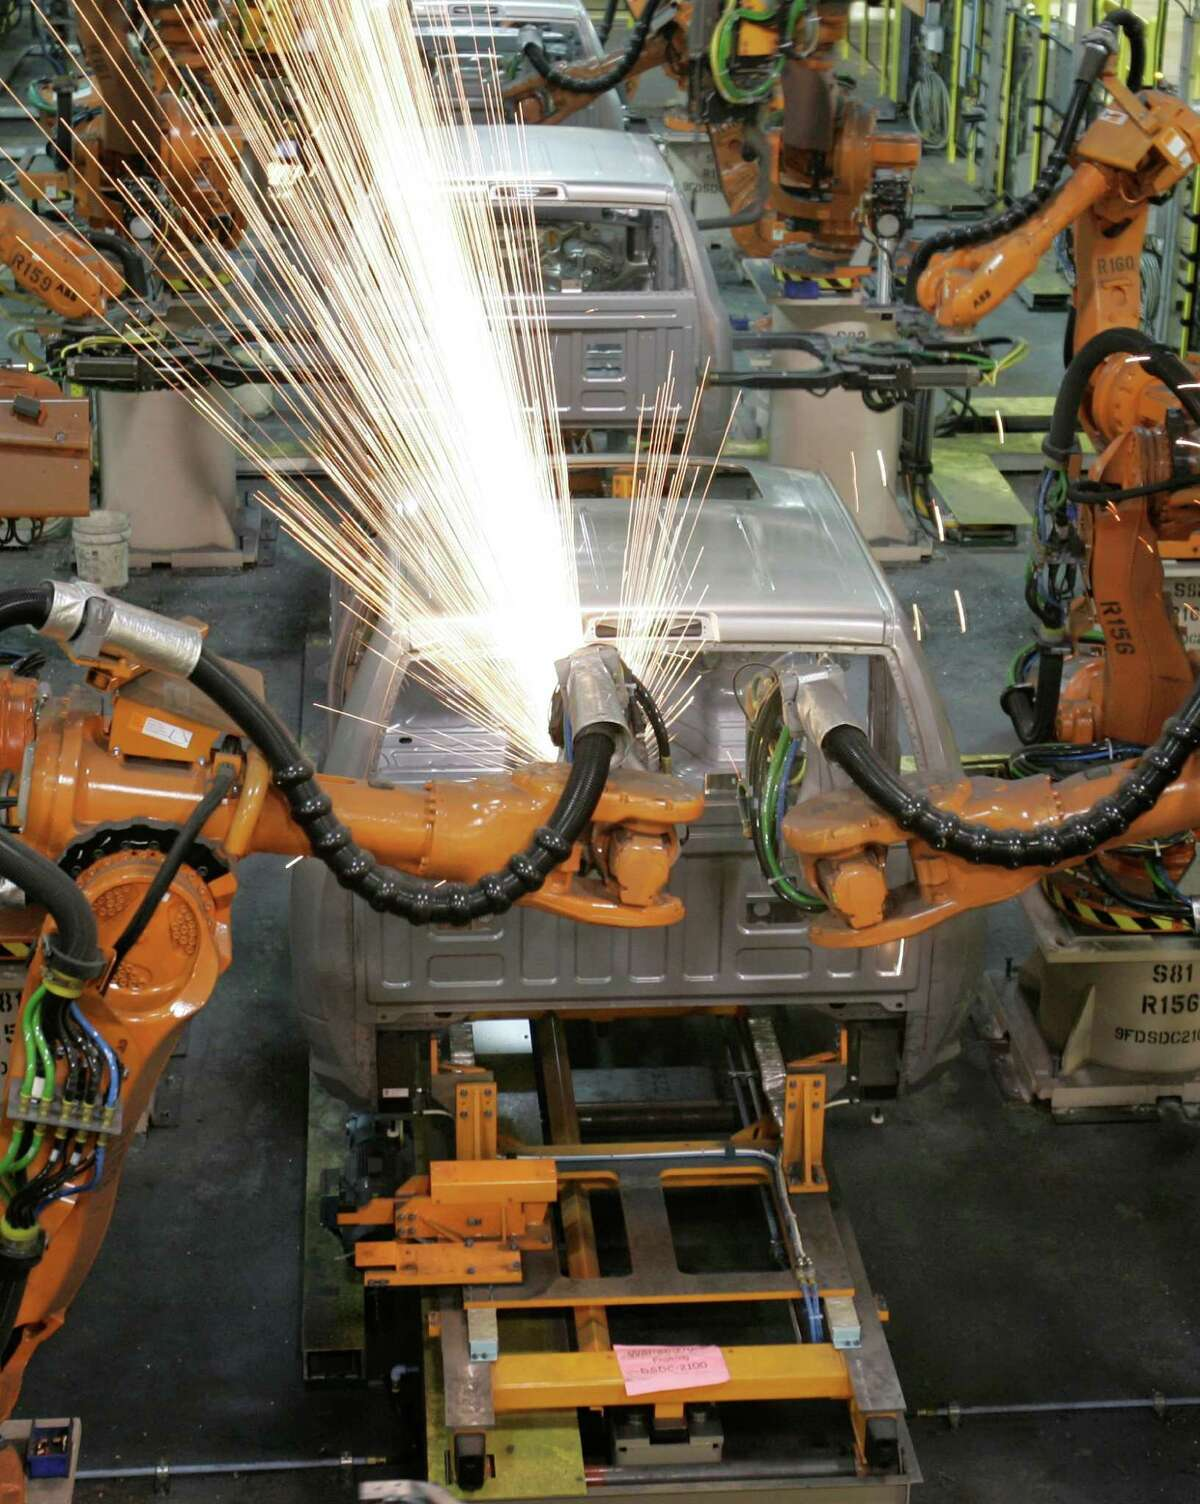 Robots weld a truck cab at a Chrysler plant in Michigan. As new generations of super